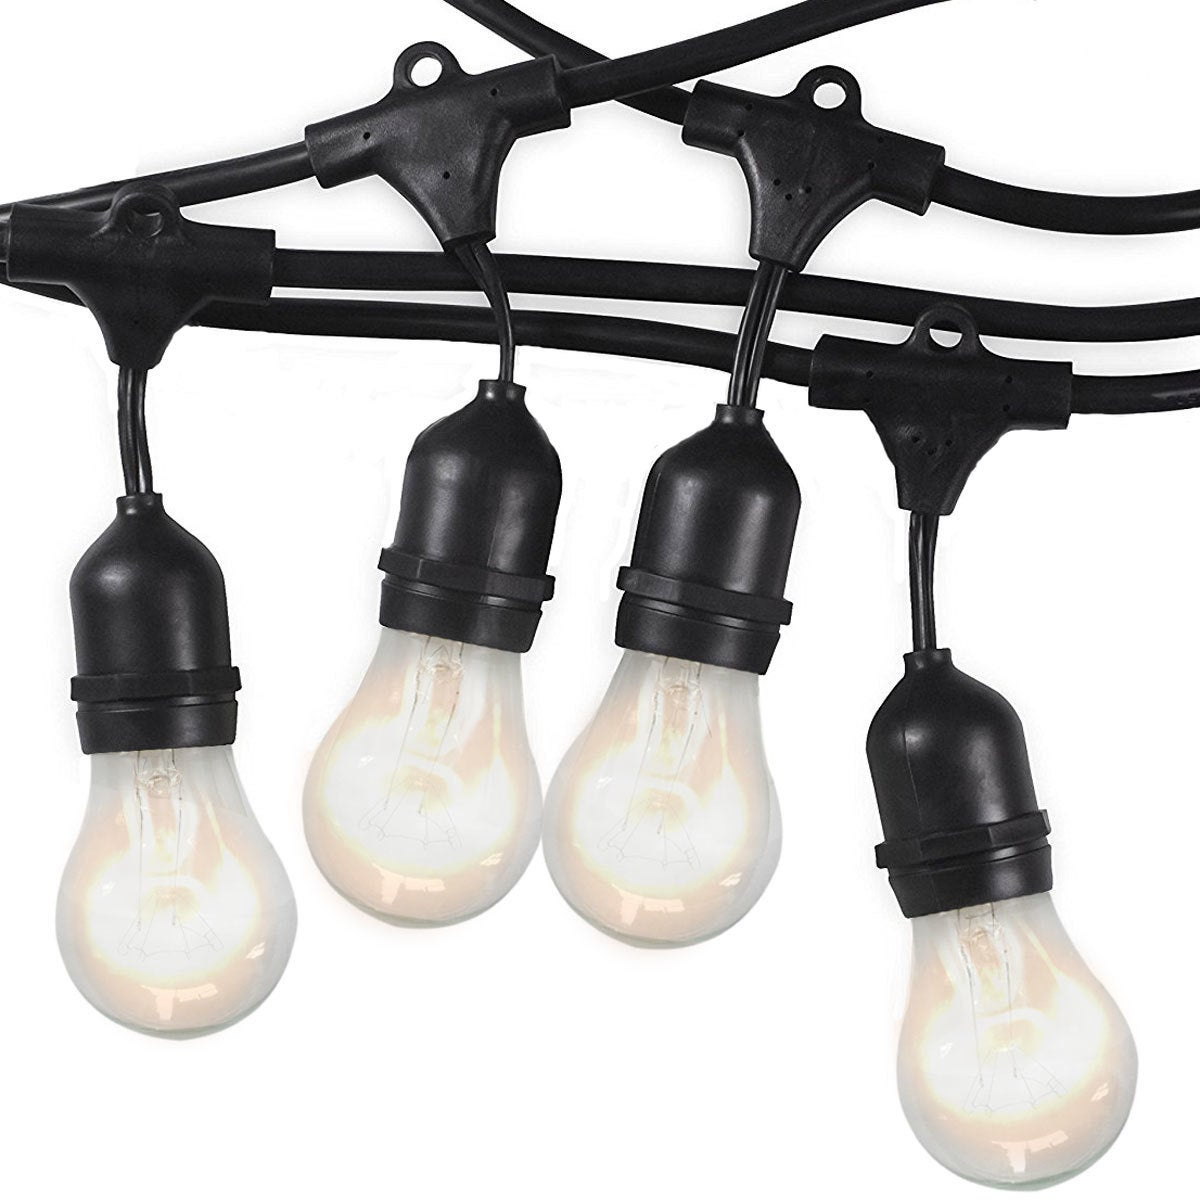 Shop Royal Designs Premium Weatherproof Indoor/Outdoor String Lights - Clear Light Bulbs Included - On Sale - Free Shipping Today - Overstock.com - 19562149  sc 1 st  Overstock.com & Shop Royal Designs Premium Weatherproof Indoor/Outdoor String Lights ...